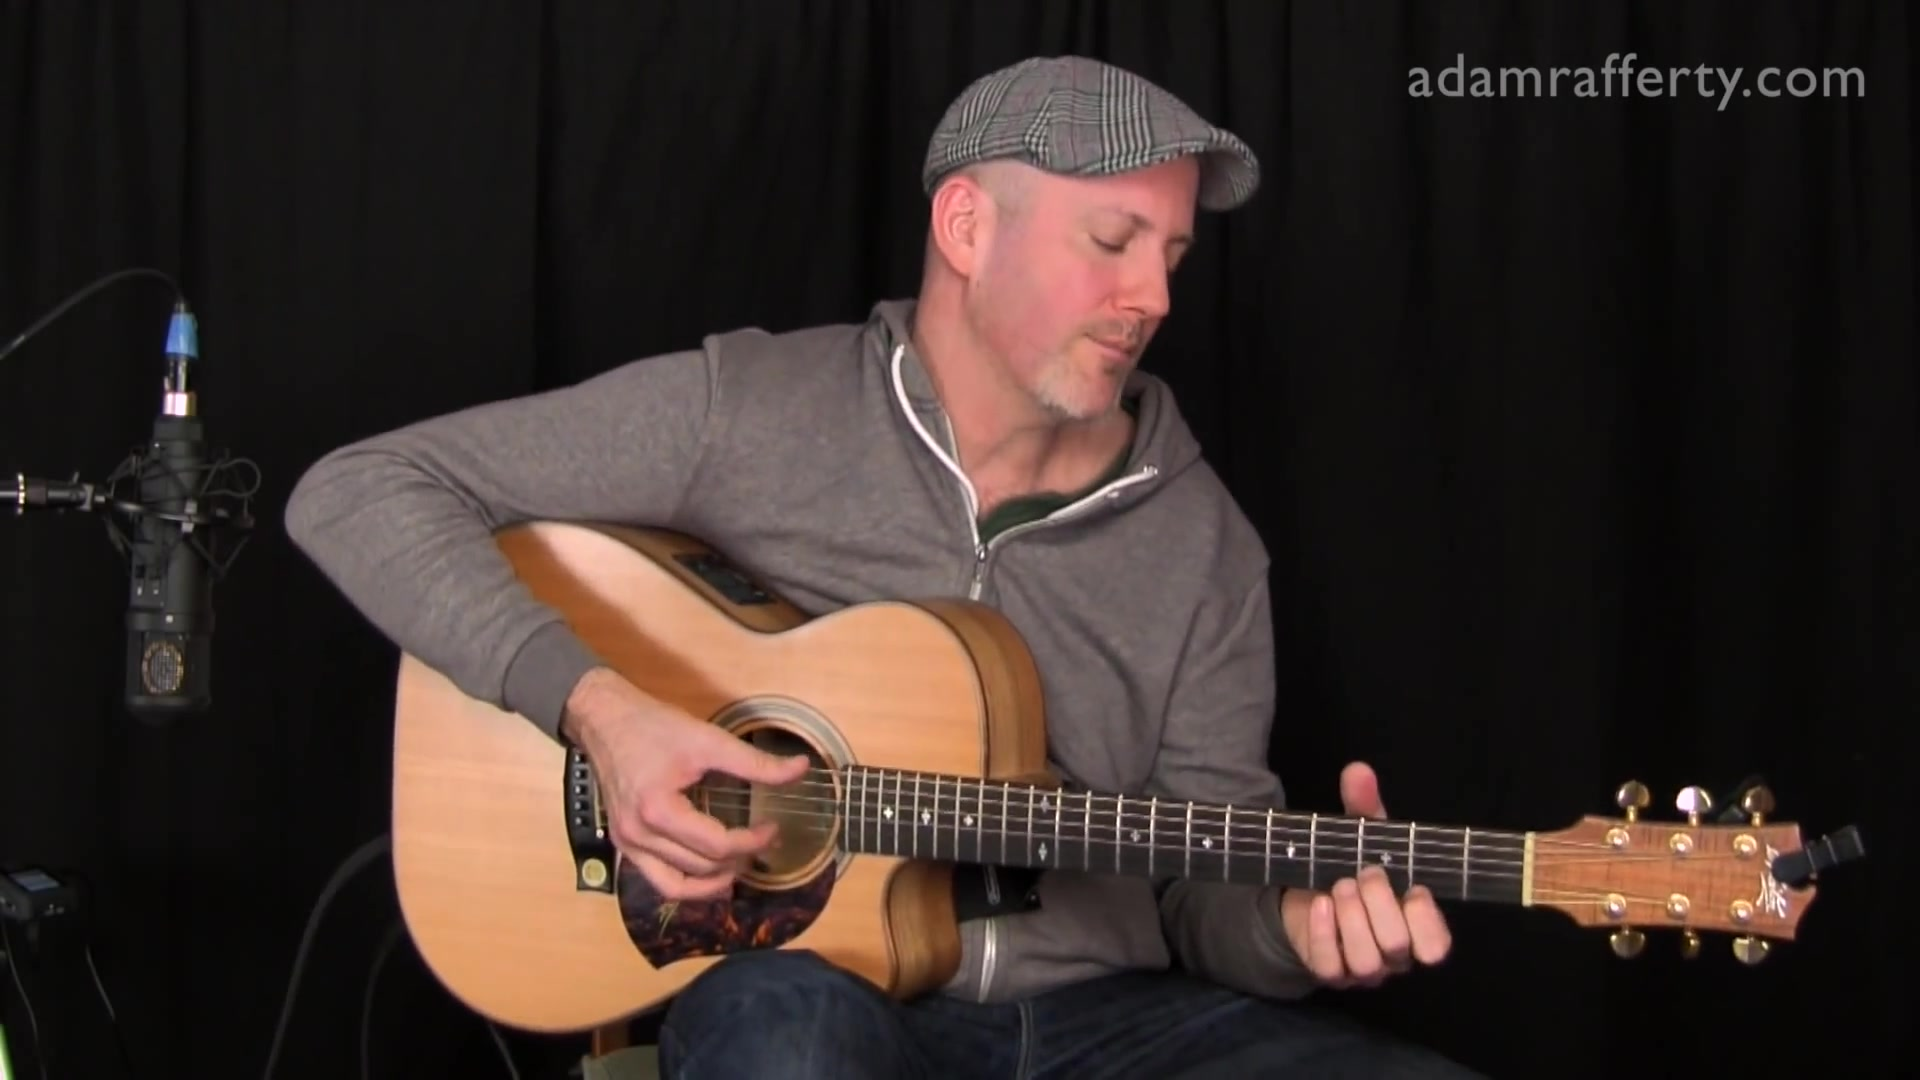 Adam Rafferty - Affirmation by George Benson - Solo Fingerstyle Guitar